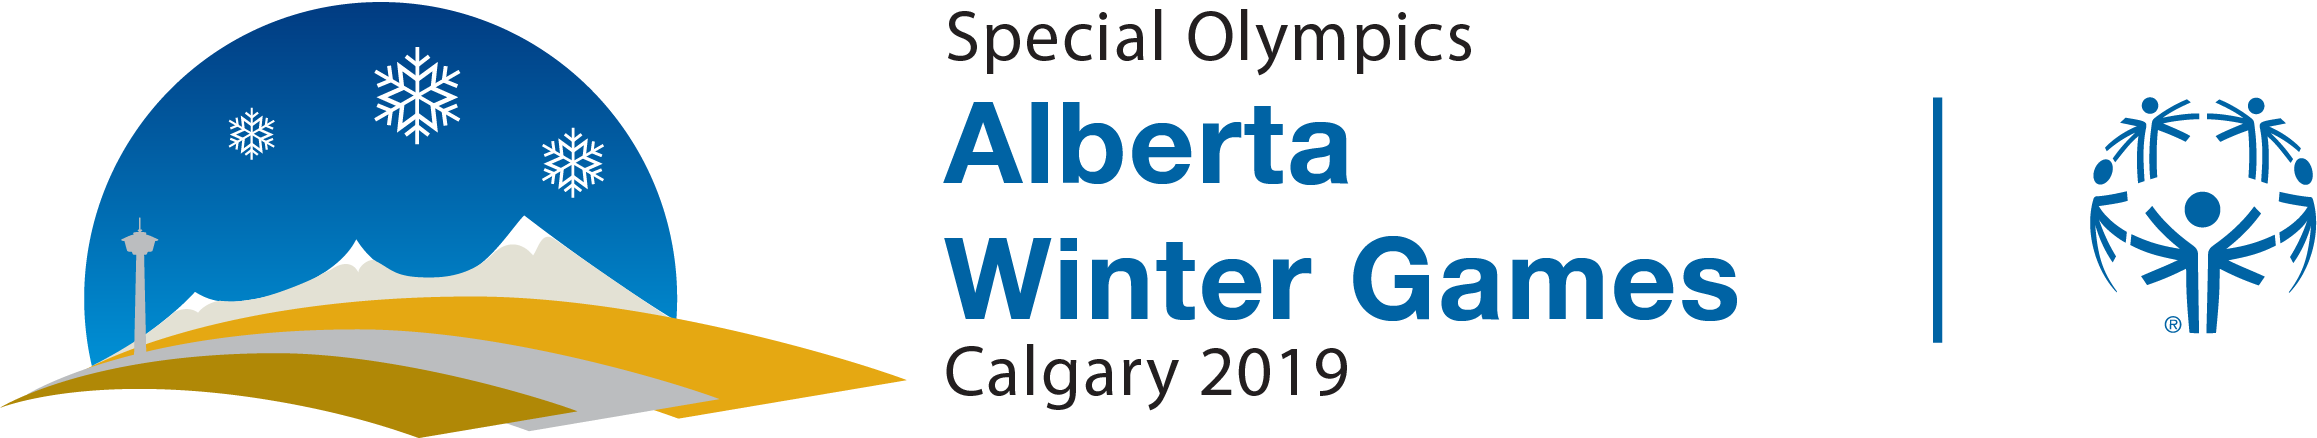 2019 Special Olympics Alberta Winter Games